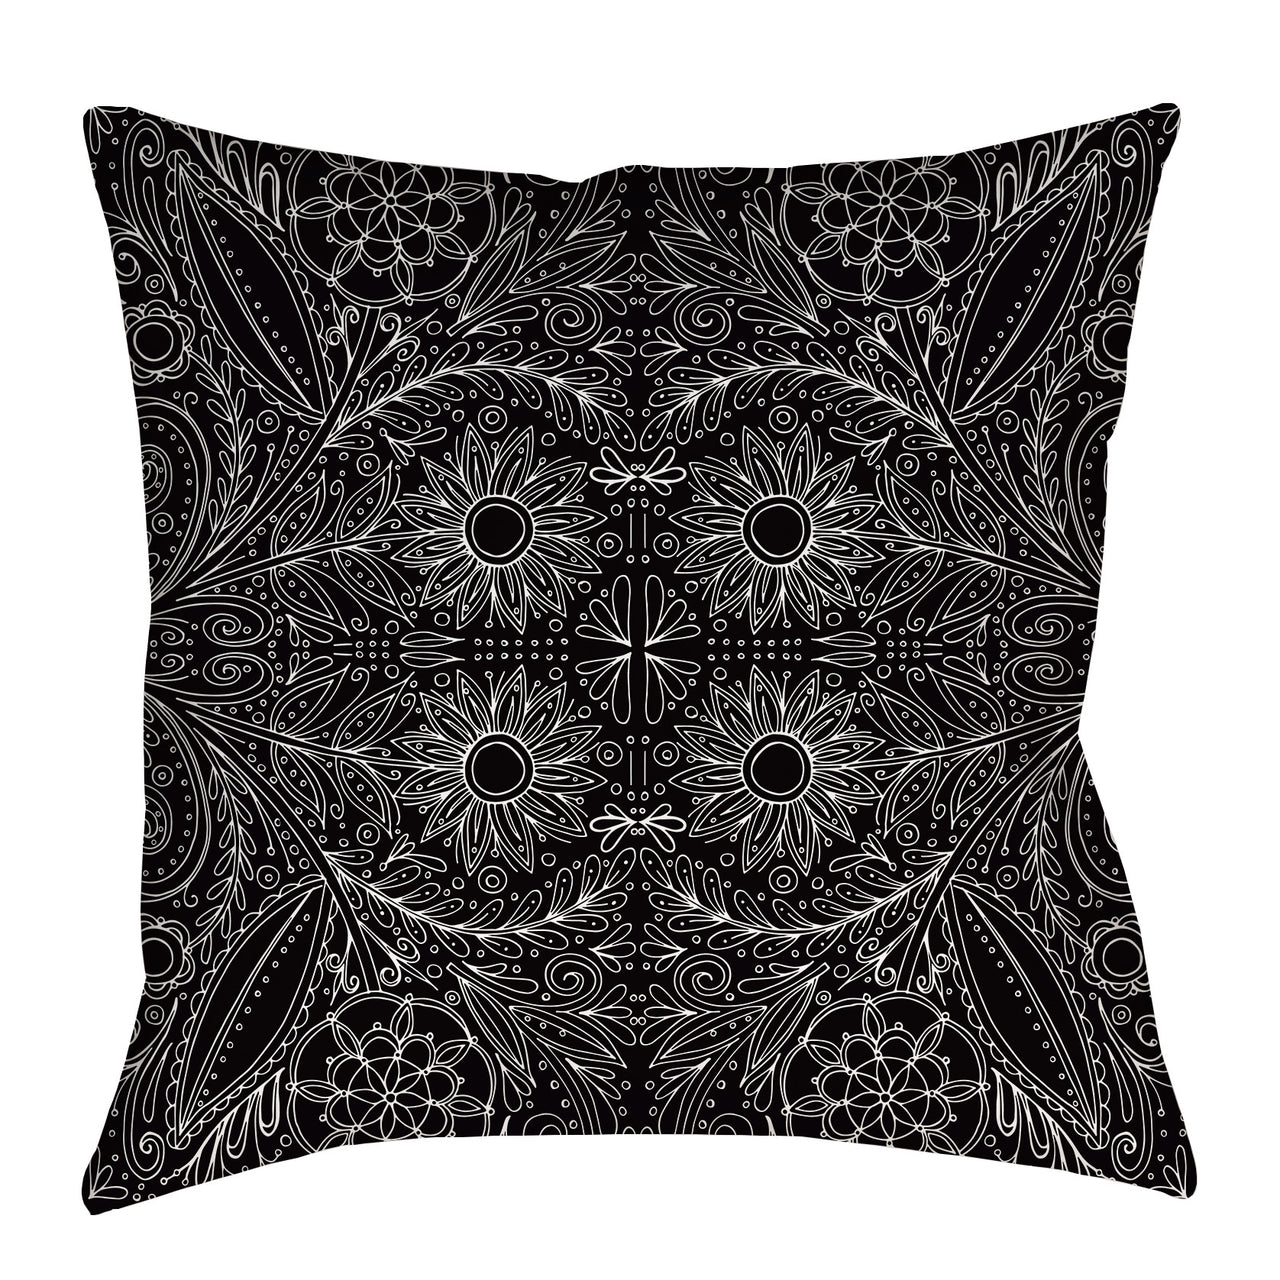 Folk Floral Pillow in black and white - kathryncole